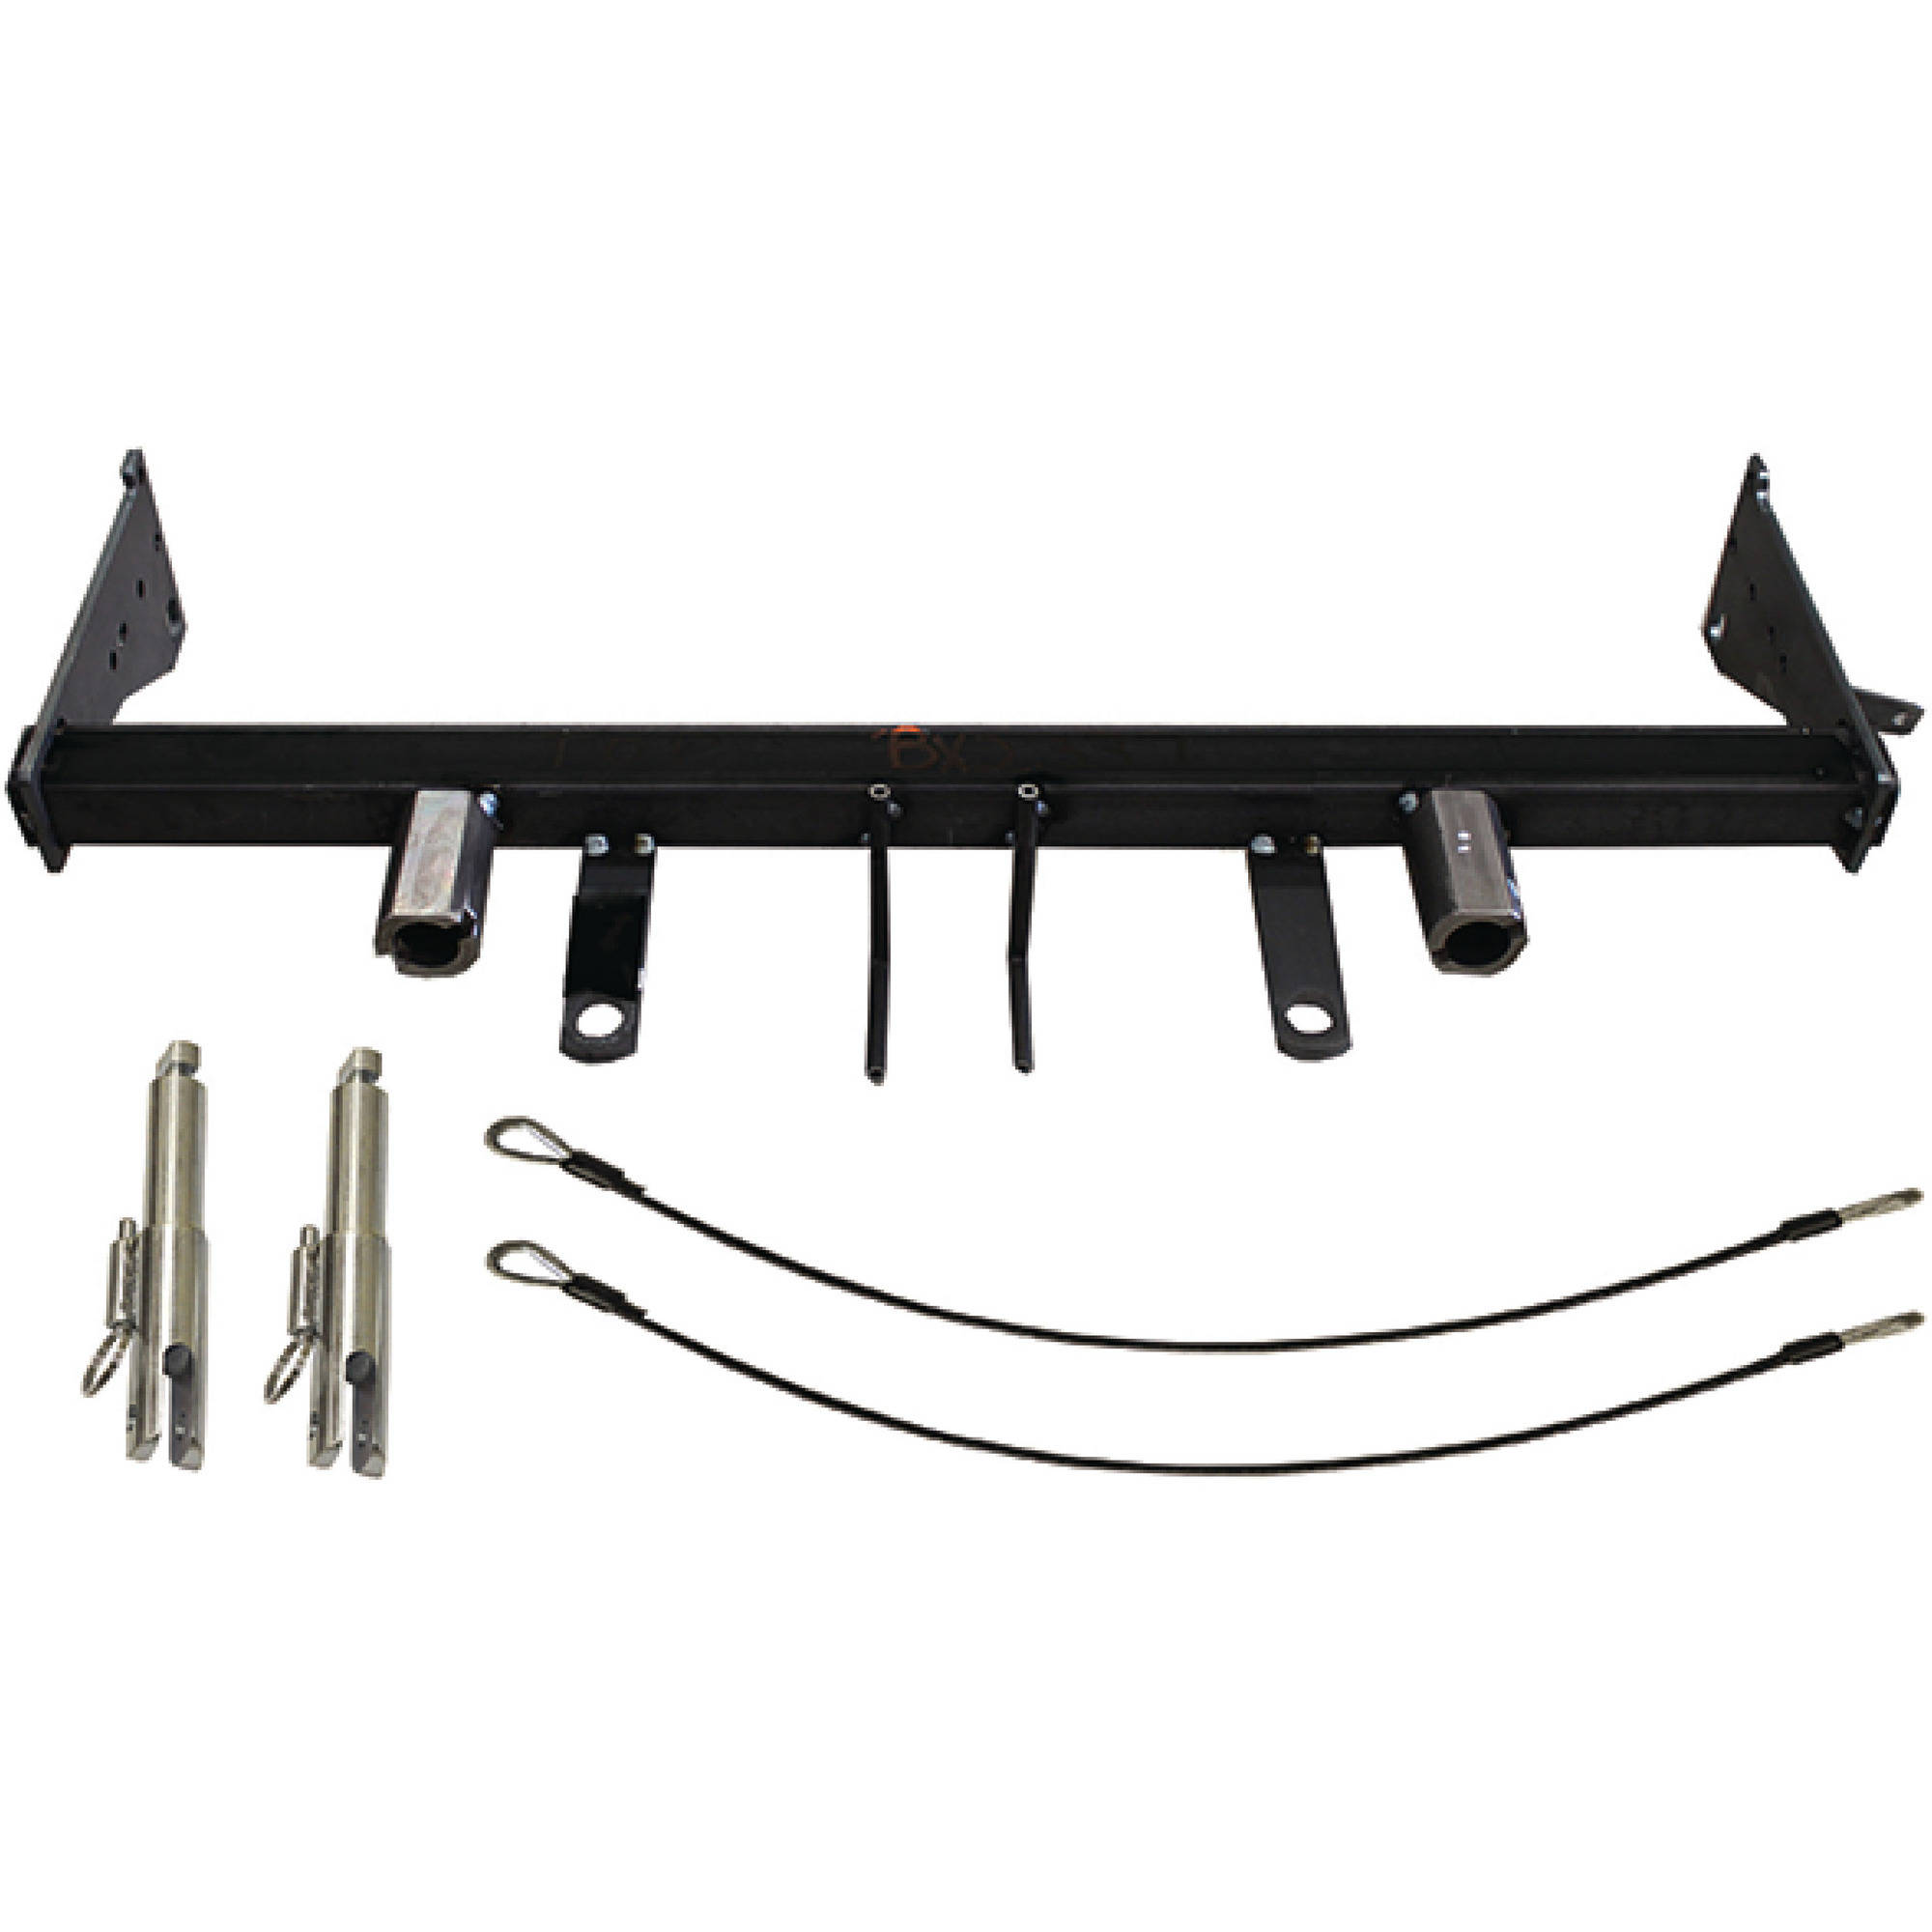 Blue Ox BX1133 Removable Tab RV Tow Baseplates for 2012-2013 Jeep Wrangler Unlimited Call of Duty MW3 (AEV... by Blue Ox